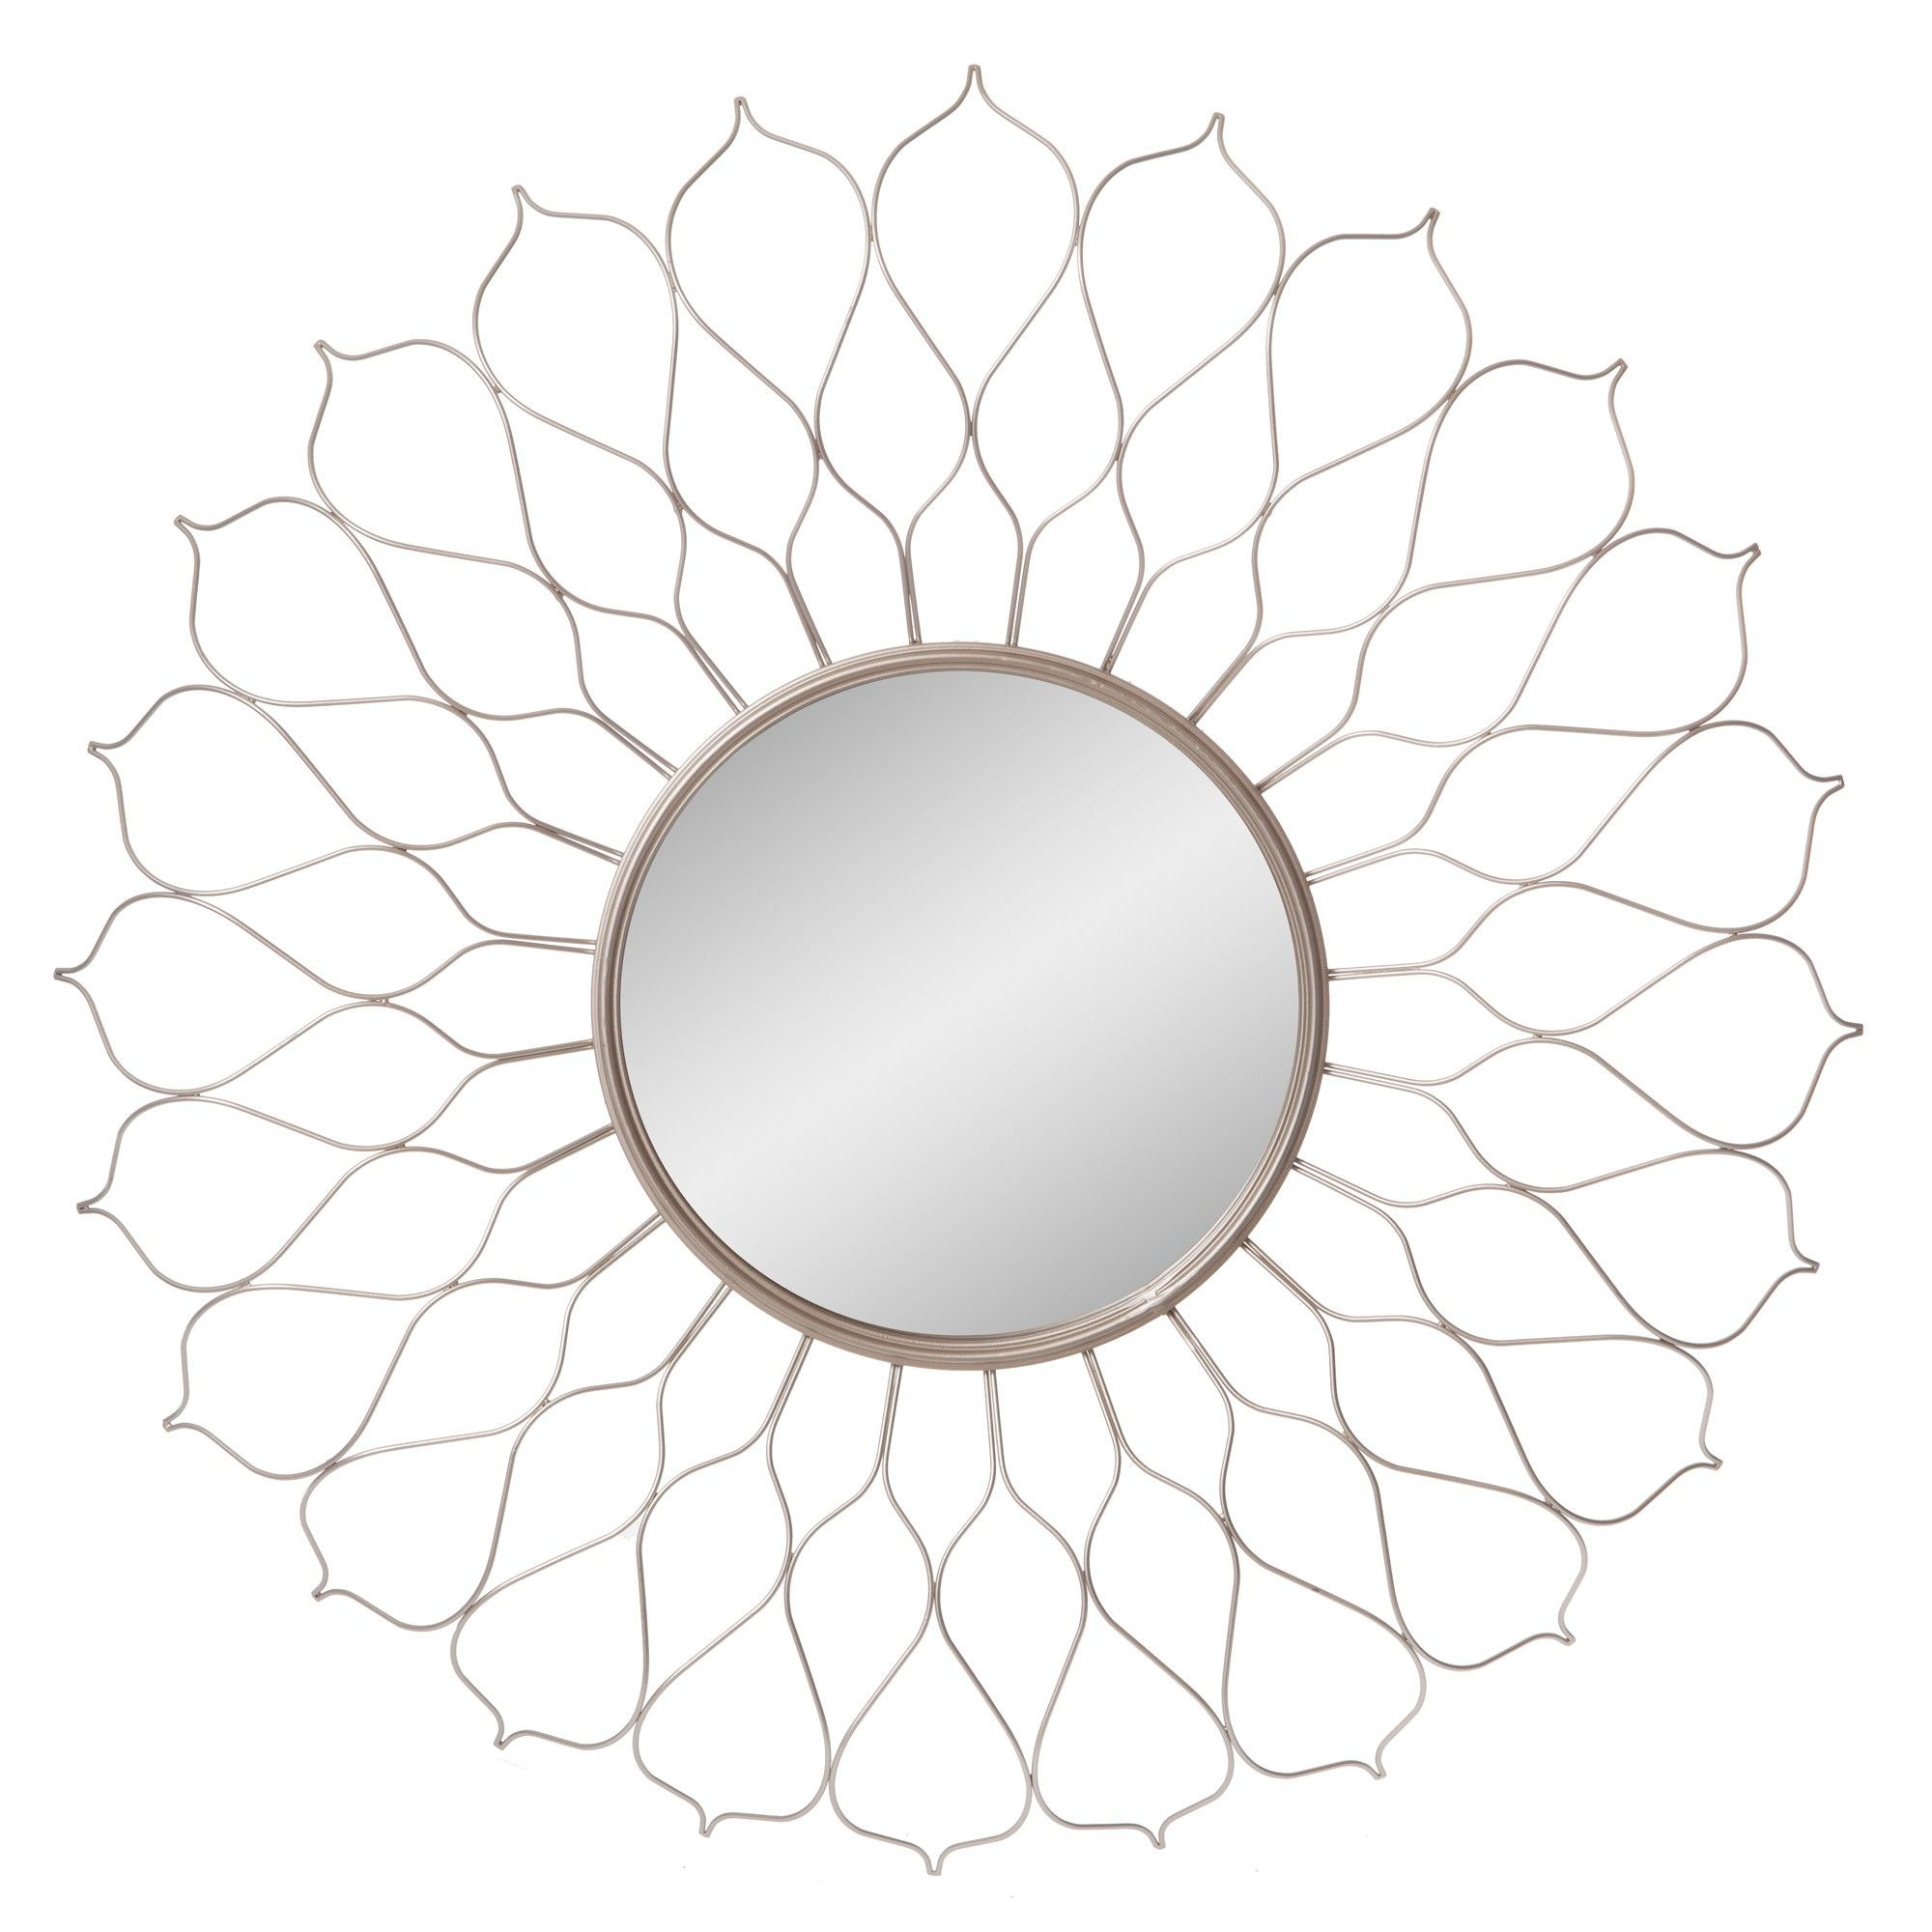 """38"""" Flower Petal Sunburst Wall Accent Mirror Silver - Patton within Starburst Wall Decor by Willa Arlo Interiors (Image 2 of 30)"""